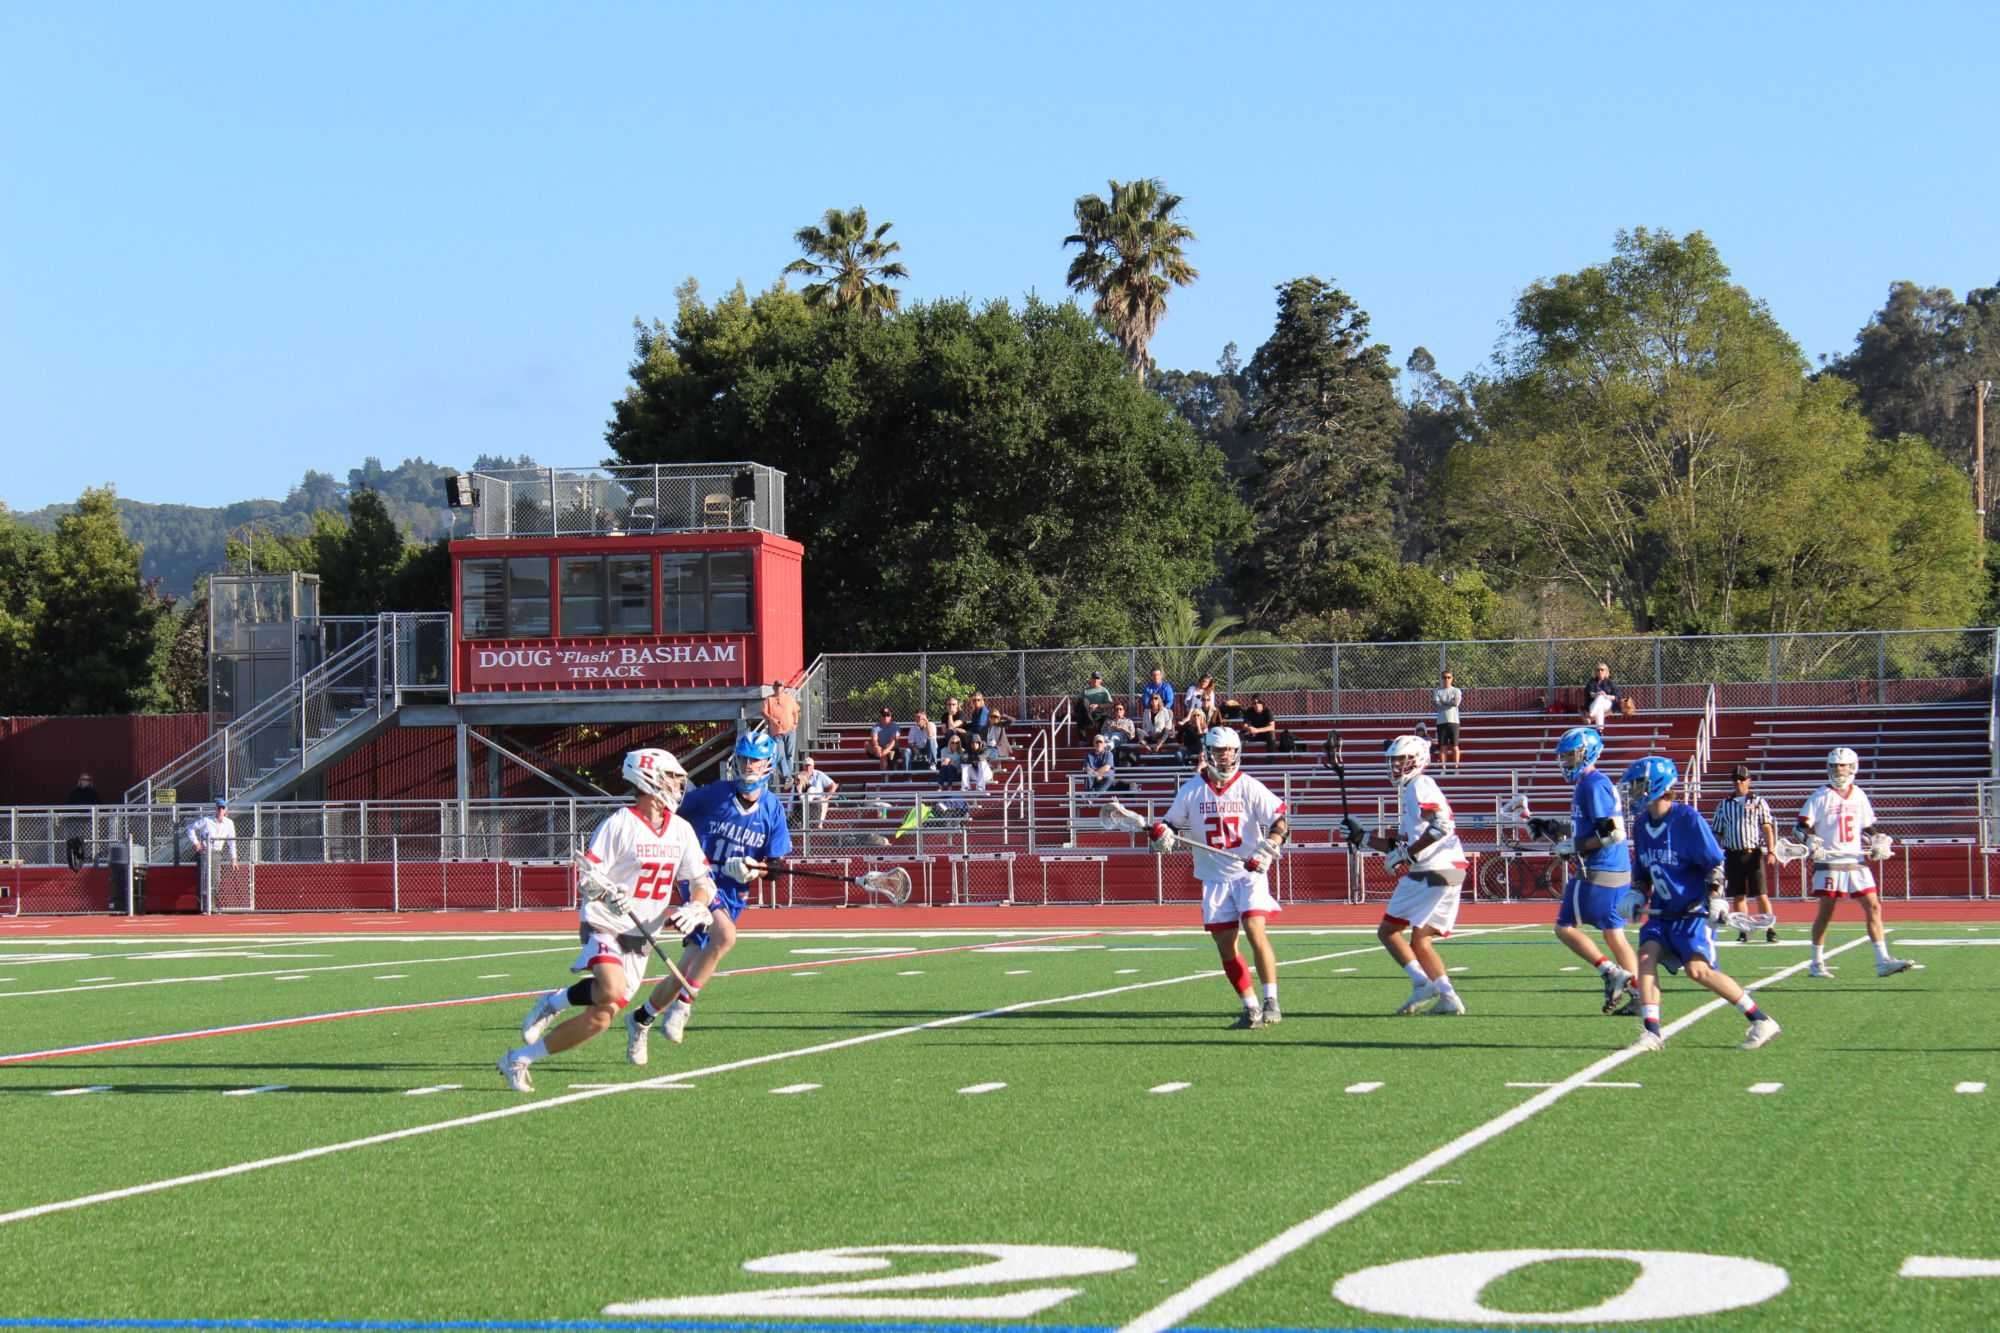 Boys' varsity lacrosse advance to MCAL championship after win against Tam